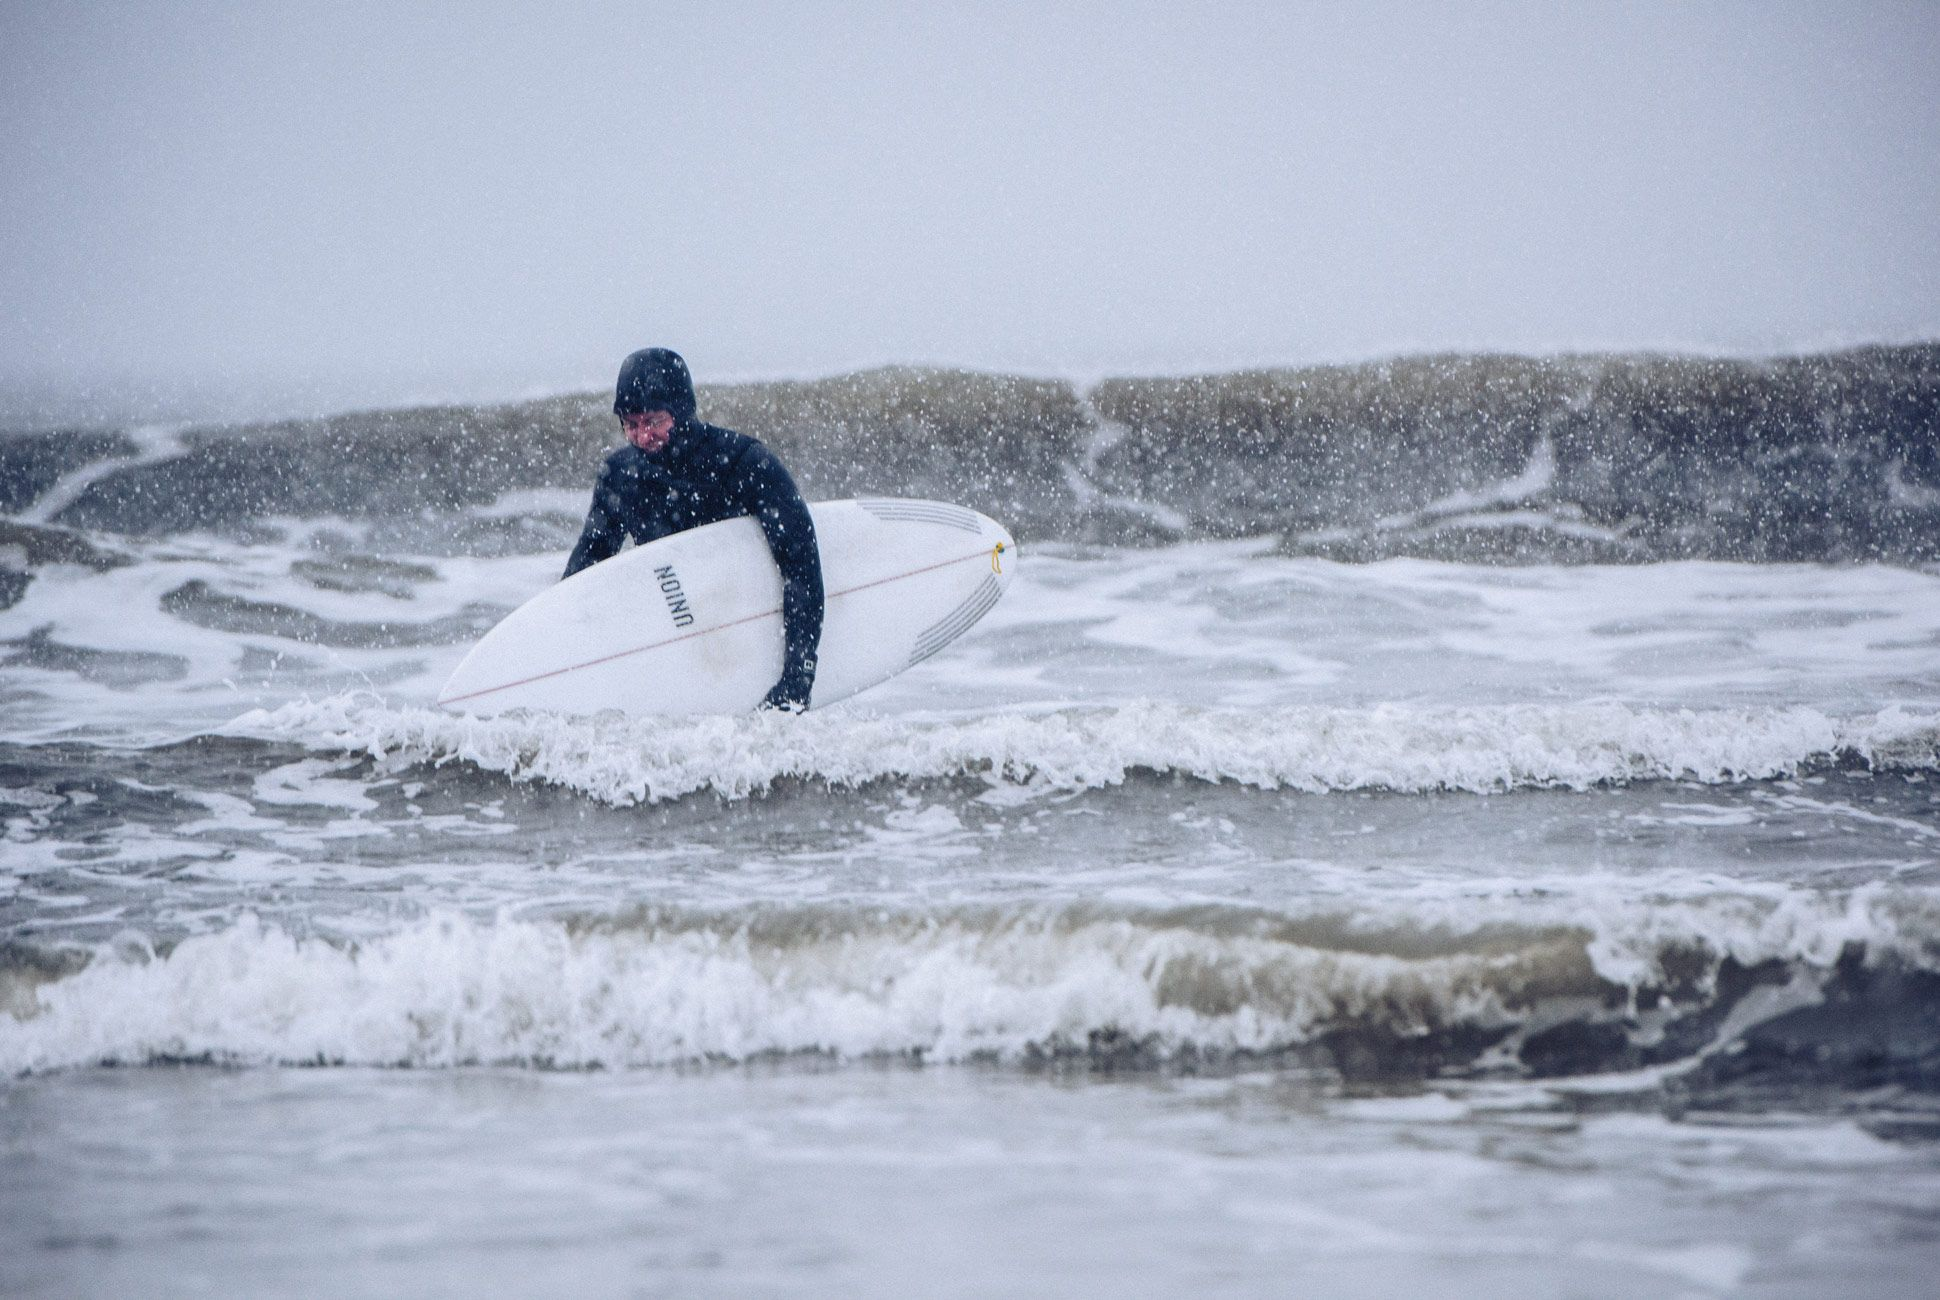 Winter-Surfing-Suit-AJ-Gear-Patrol-Slide-8